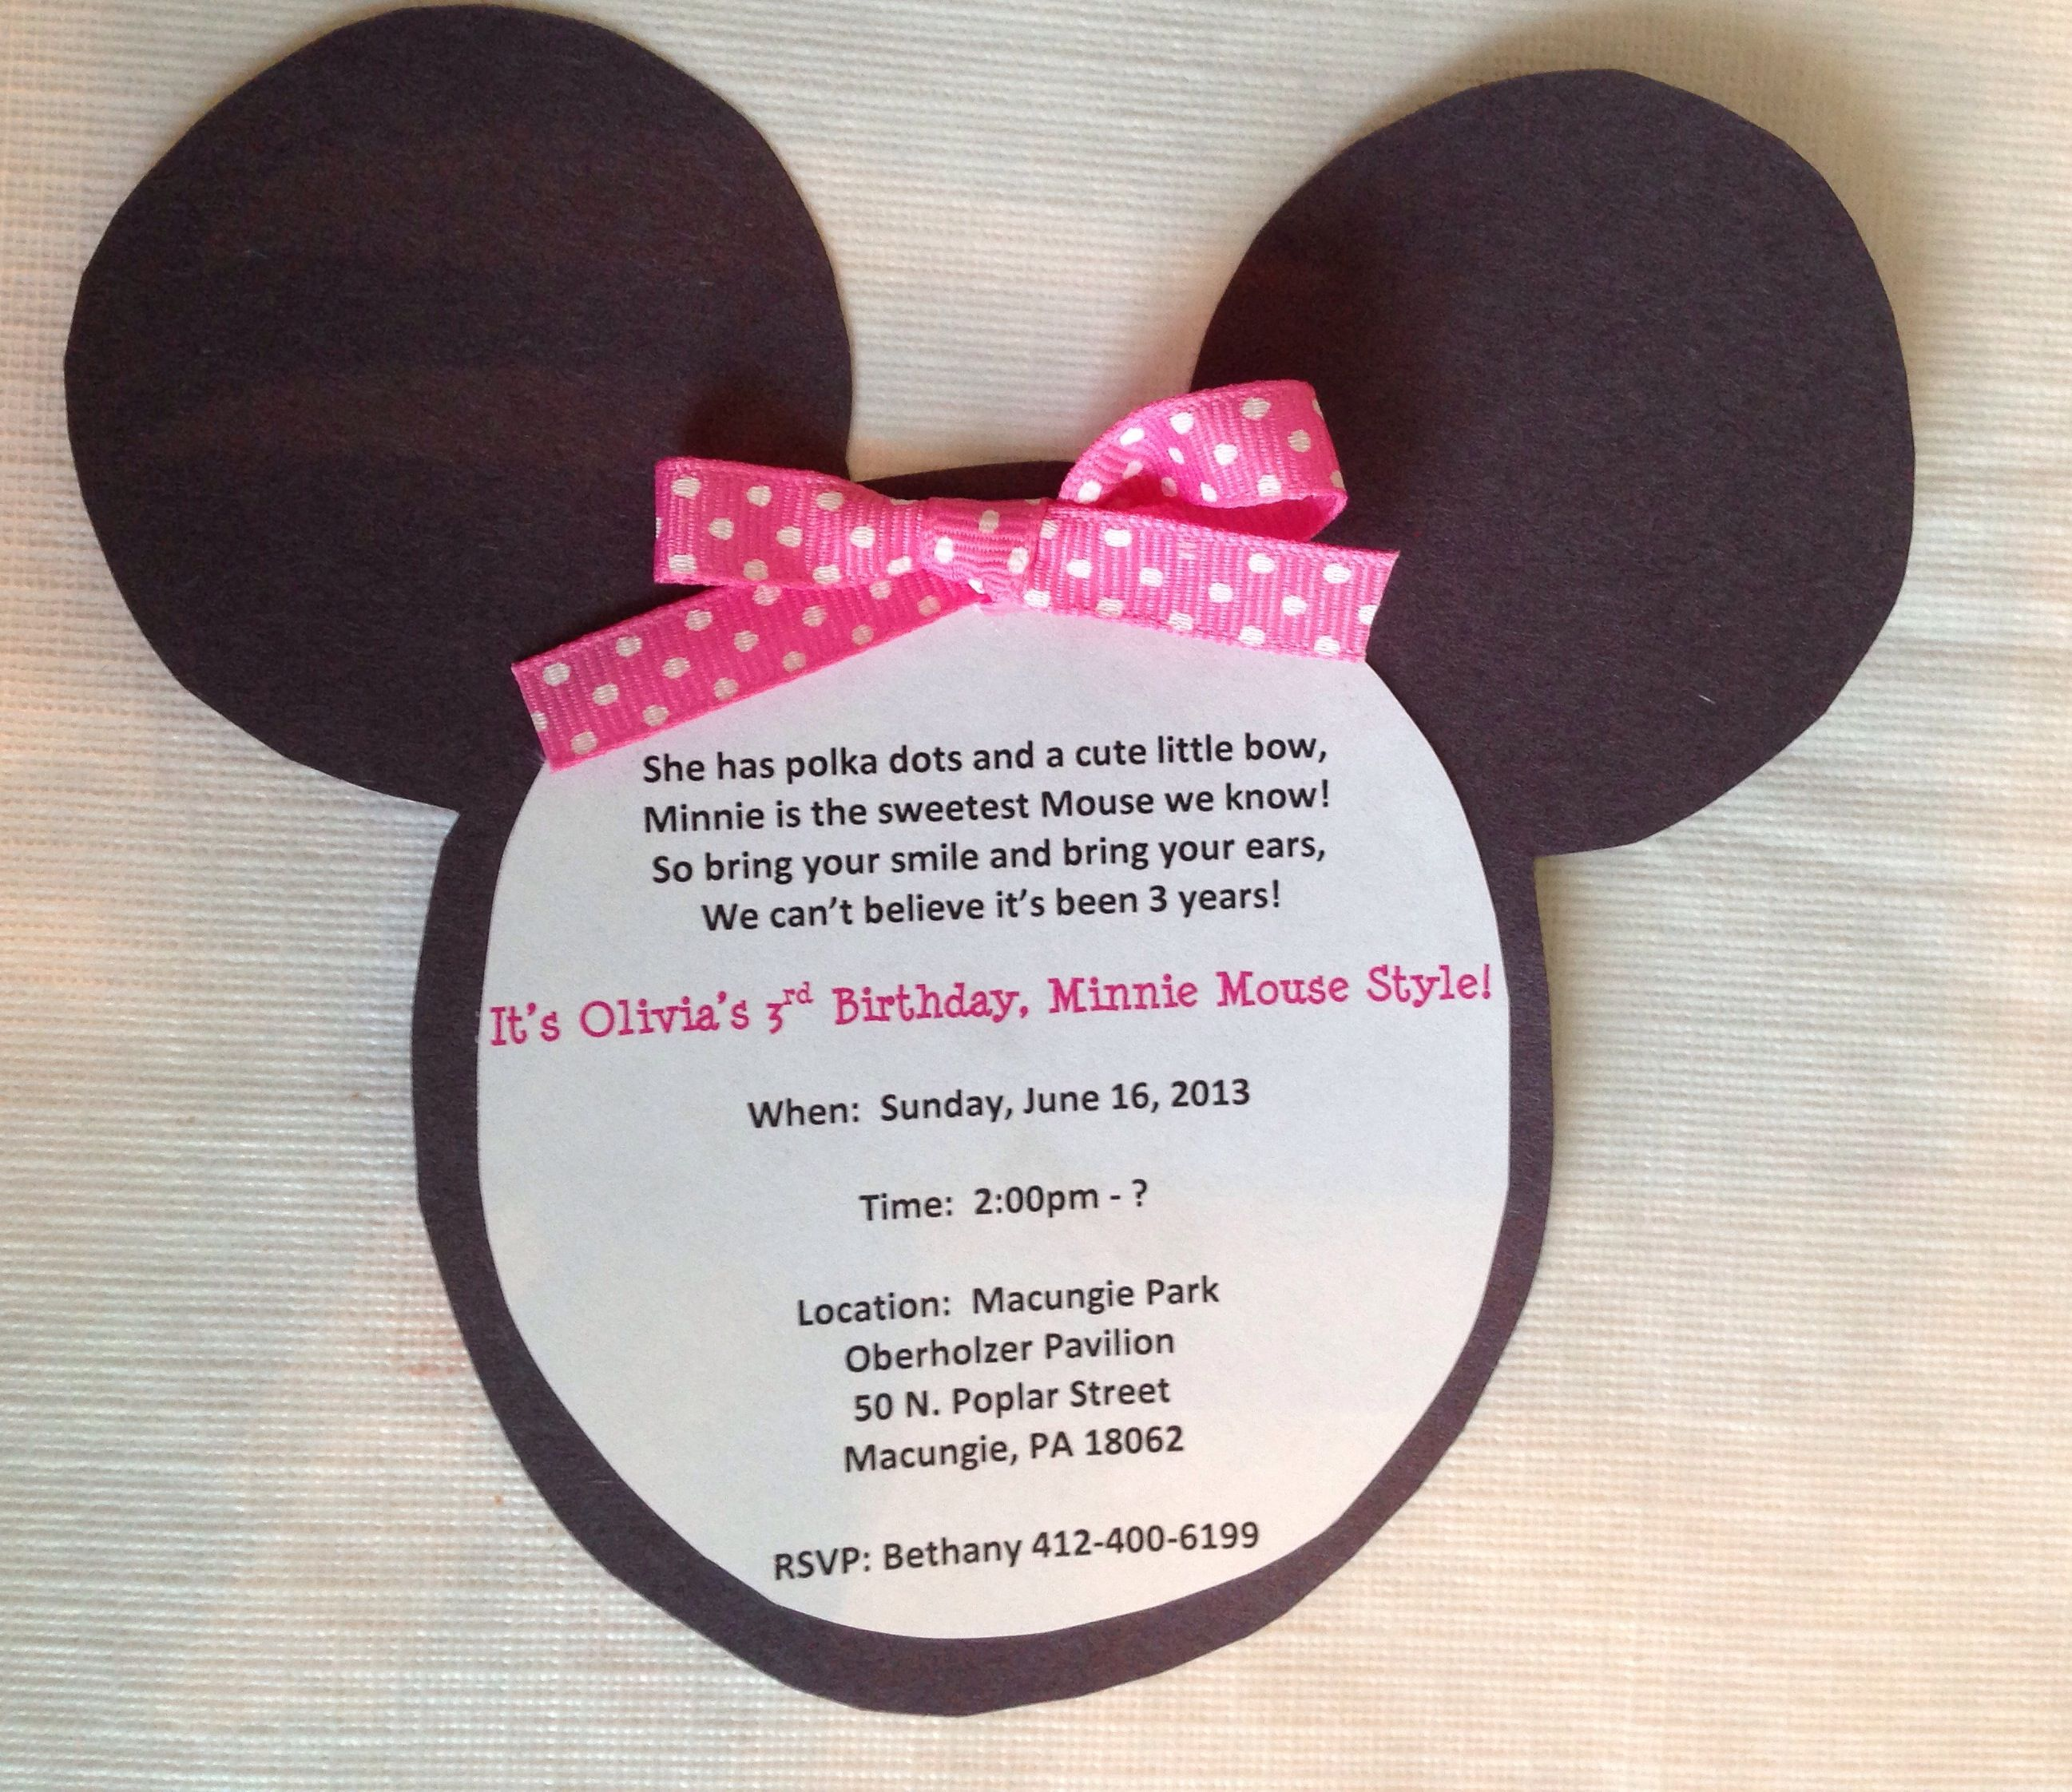 Minnie Mouse invitations _ I love the poem at the top.